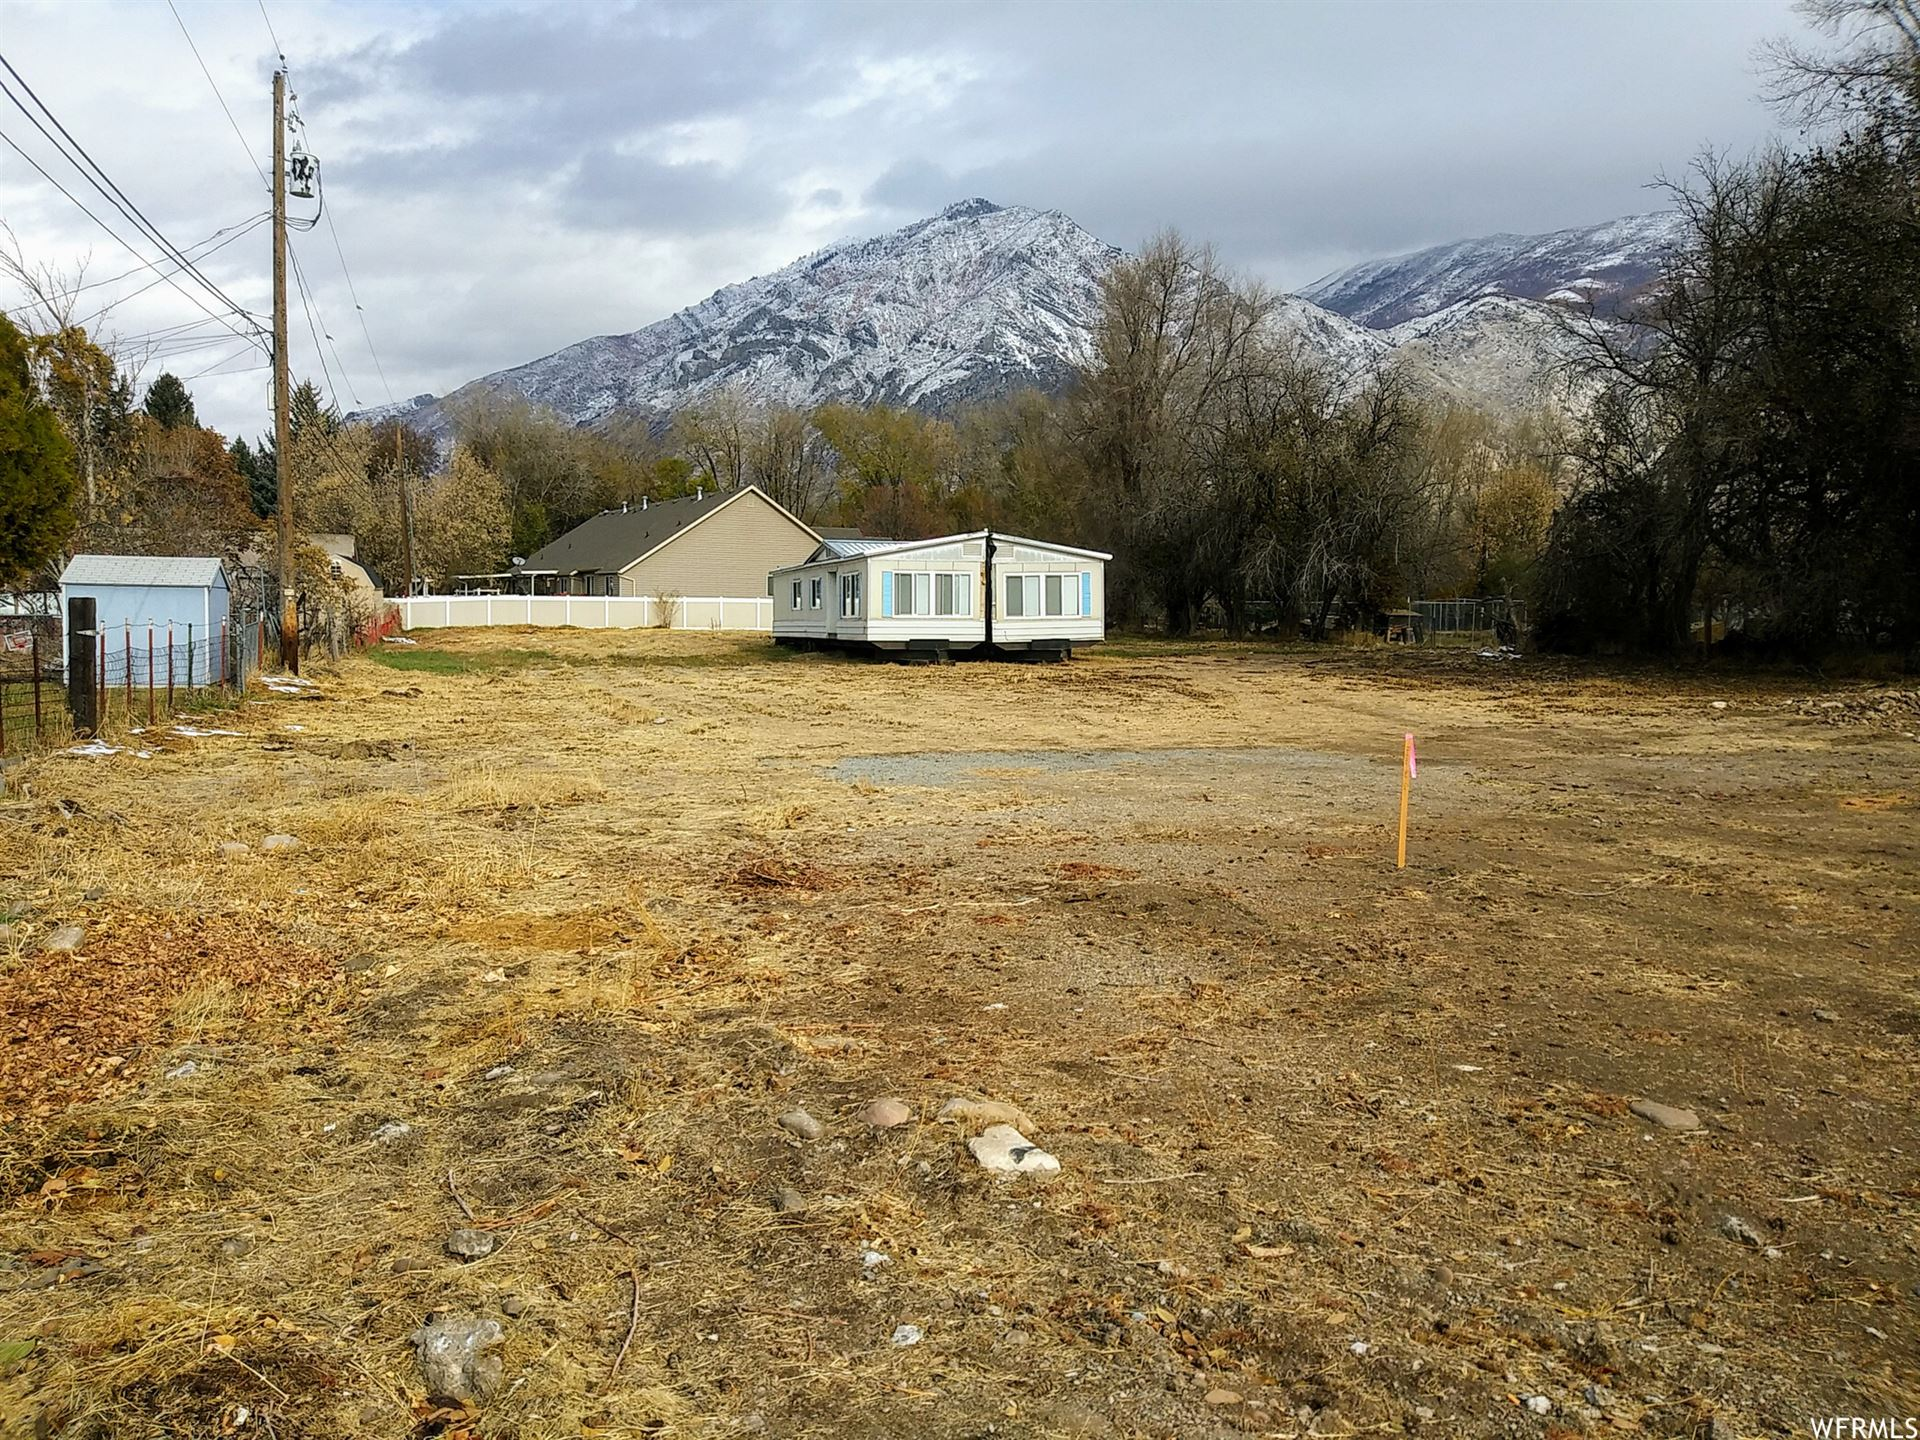 Photo of #2, Springville, UT 84663 (MLS # 1718558)